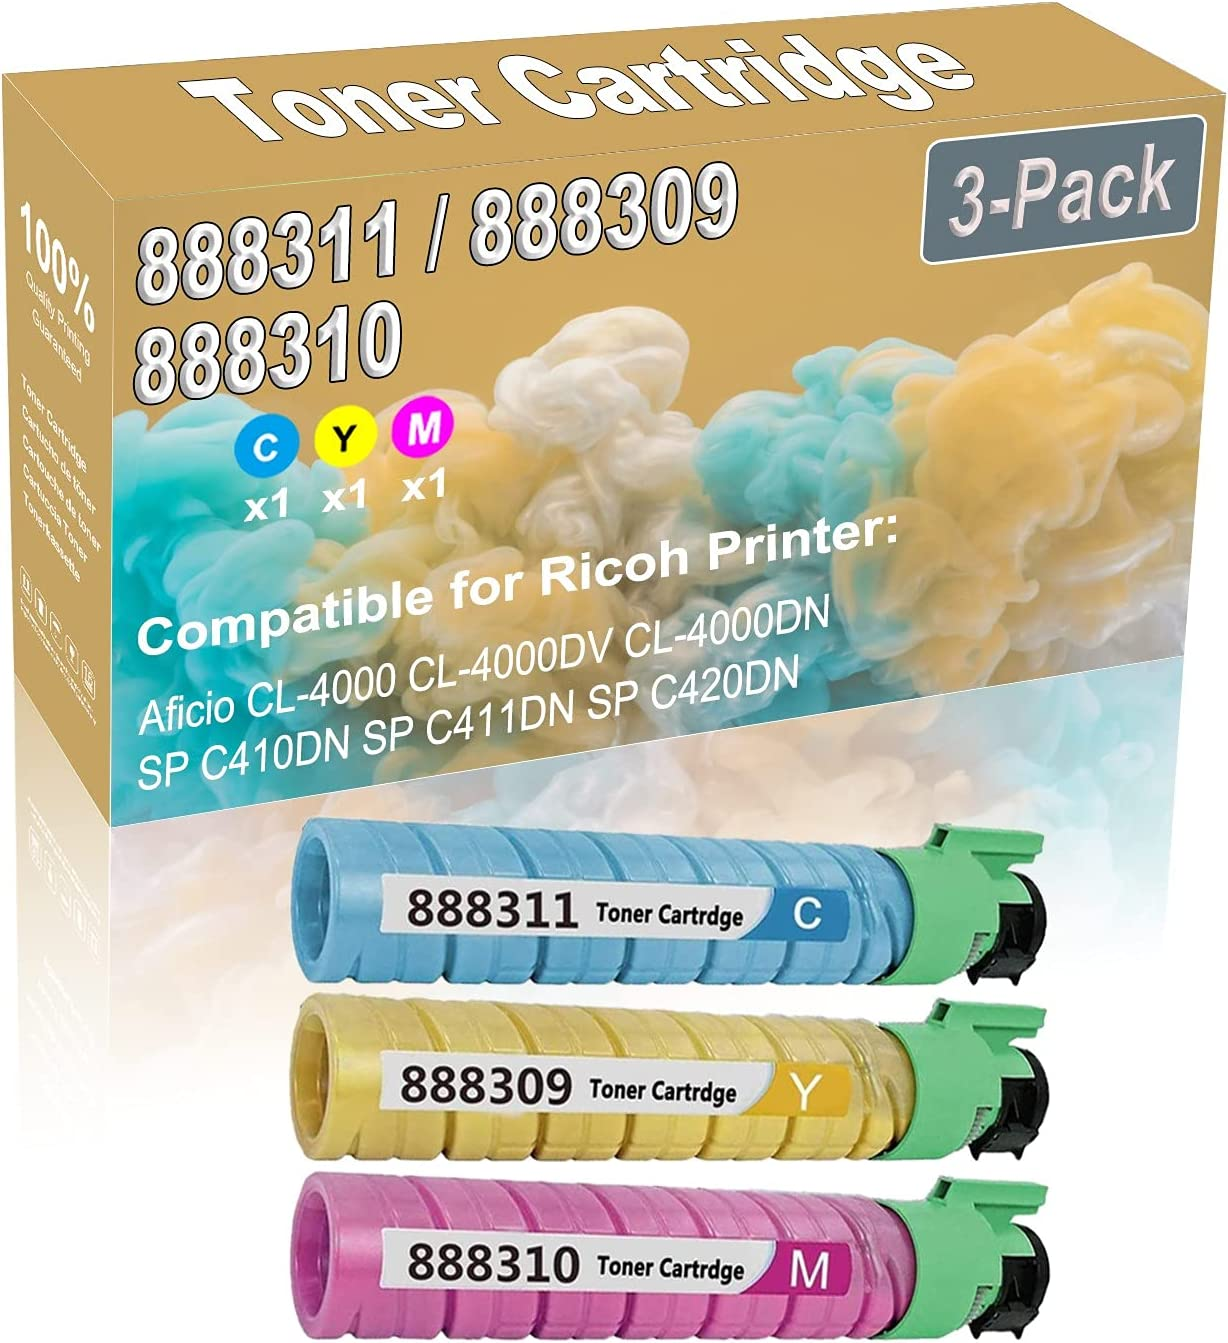 3-Pack (C+Y+M) Compatible High Yield 888311 888309 888310 Printer Toner Cartridge use for Ricoh Aficio CL-4000 CL-4000DV CL-4000DN Printers